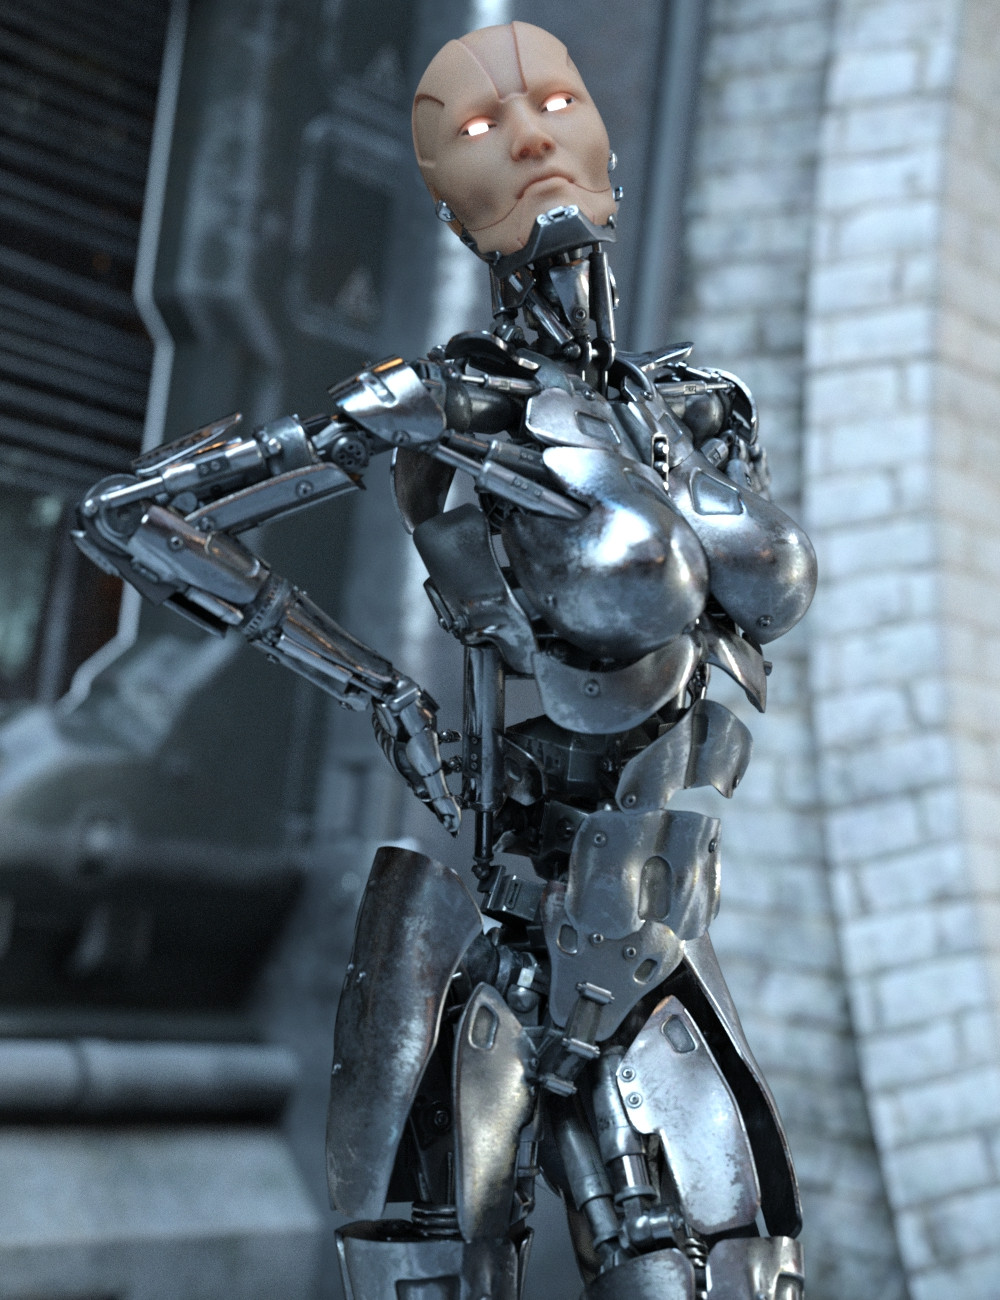 Female cyborg with new silver body armour with hands behind back in arched pose, with skin texture on face and glowing eyes